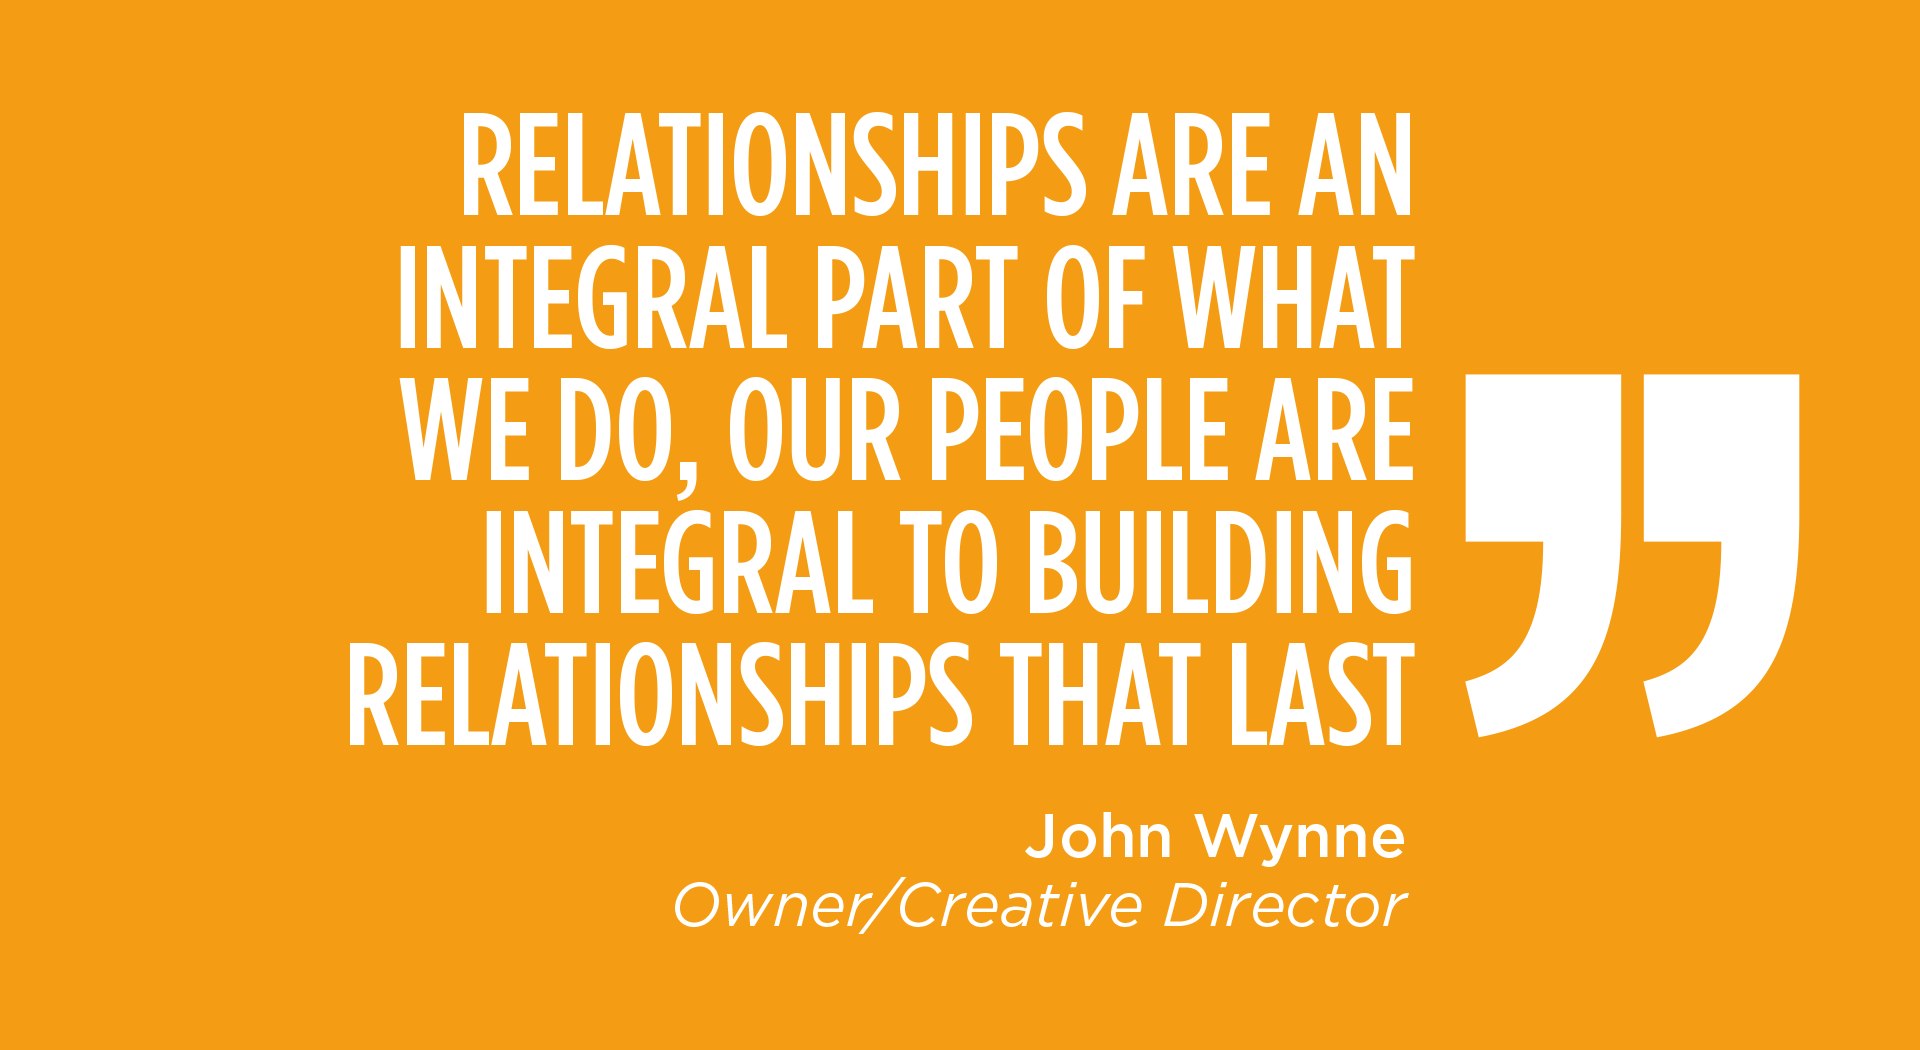 RELATIONSHIPS ARE AN INTEGRAL PART OF WHAT WE DO, OUR PEOPLE ARE INTEGRAL TO BUILDING RELATIONSHIPS THAT LAST - John Wynne, Owner/Creative Director